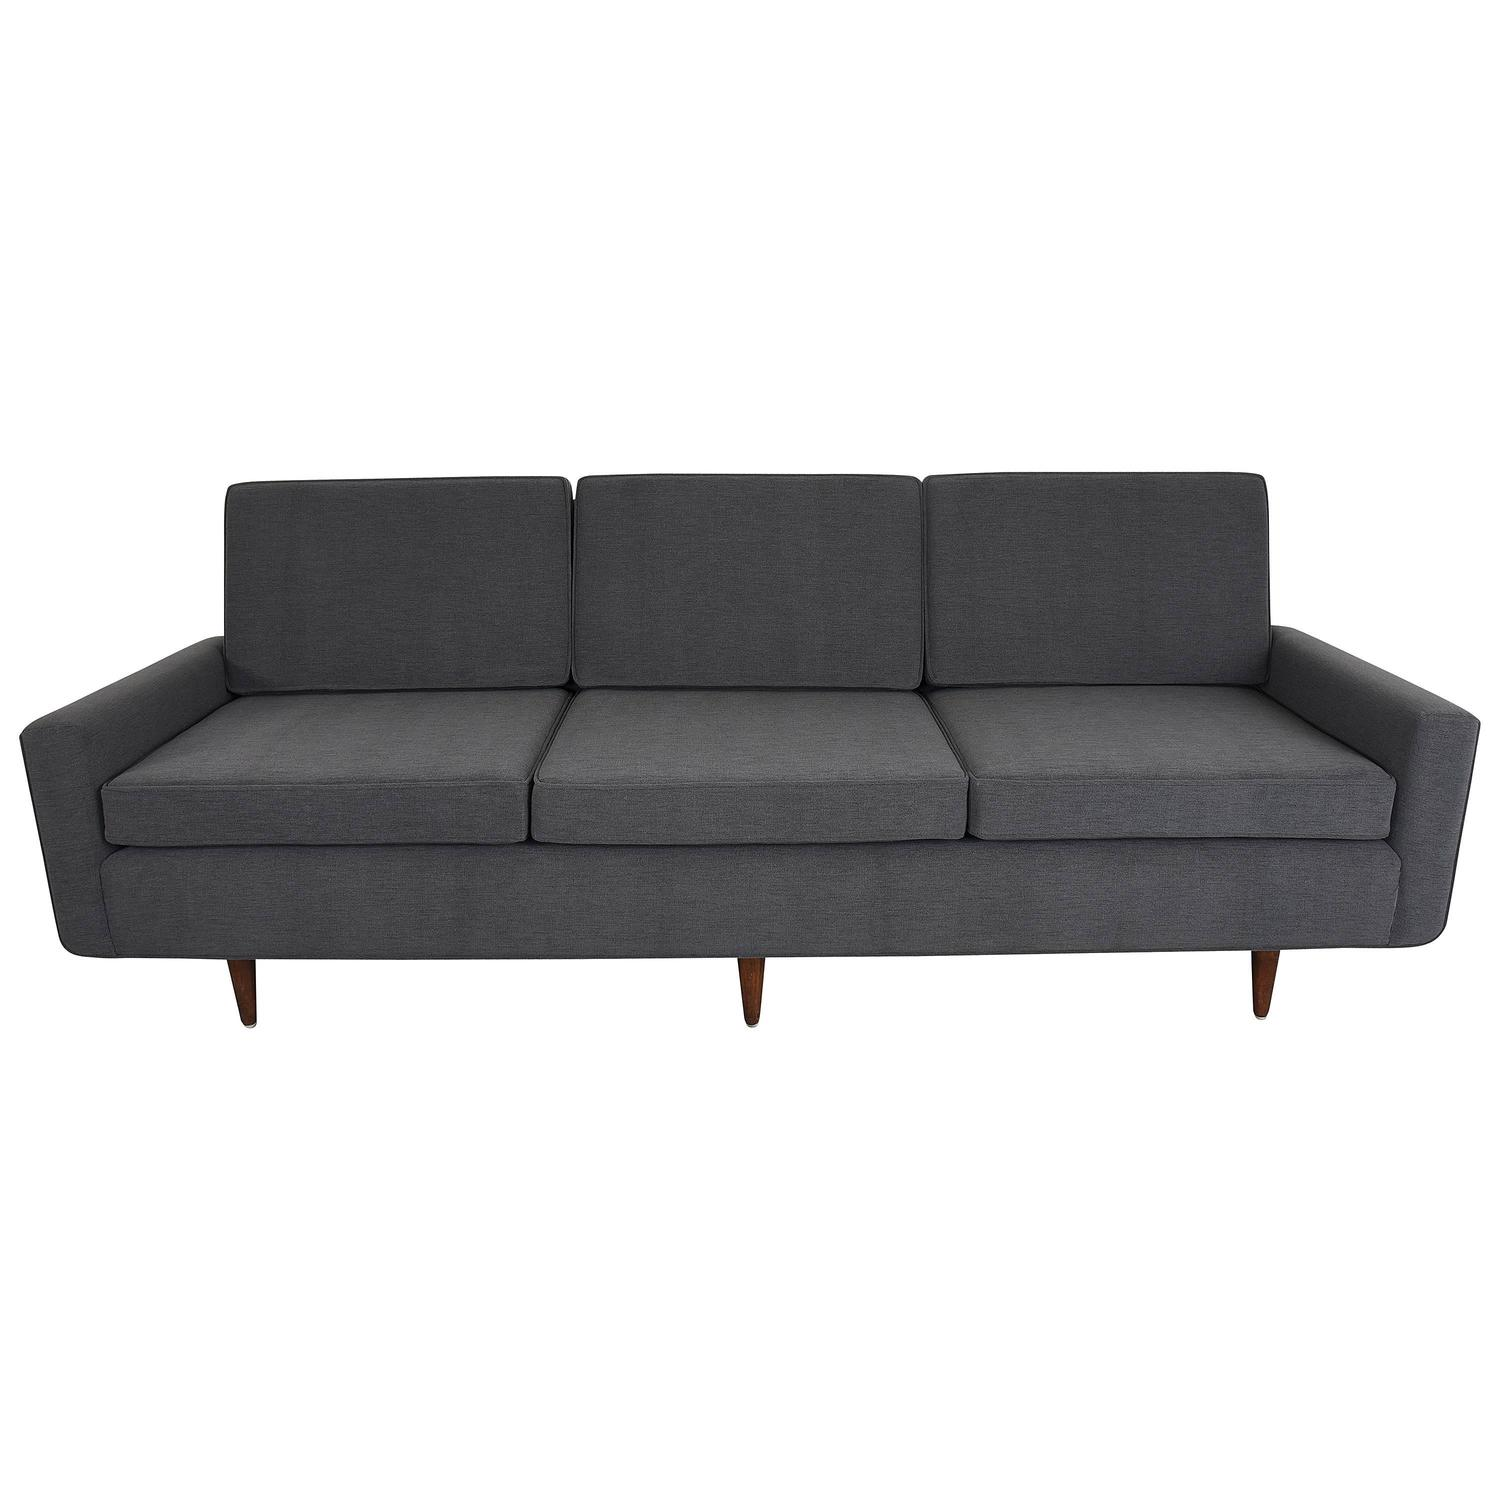 "Ettore Sottsass ""East Side"" Three-Seat Sofa for Knoll at 1stdibs for Ettore Sottsass Sofa  lp4eri"